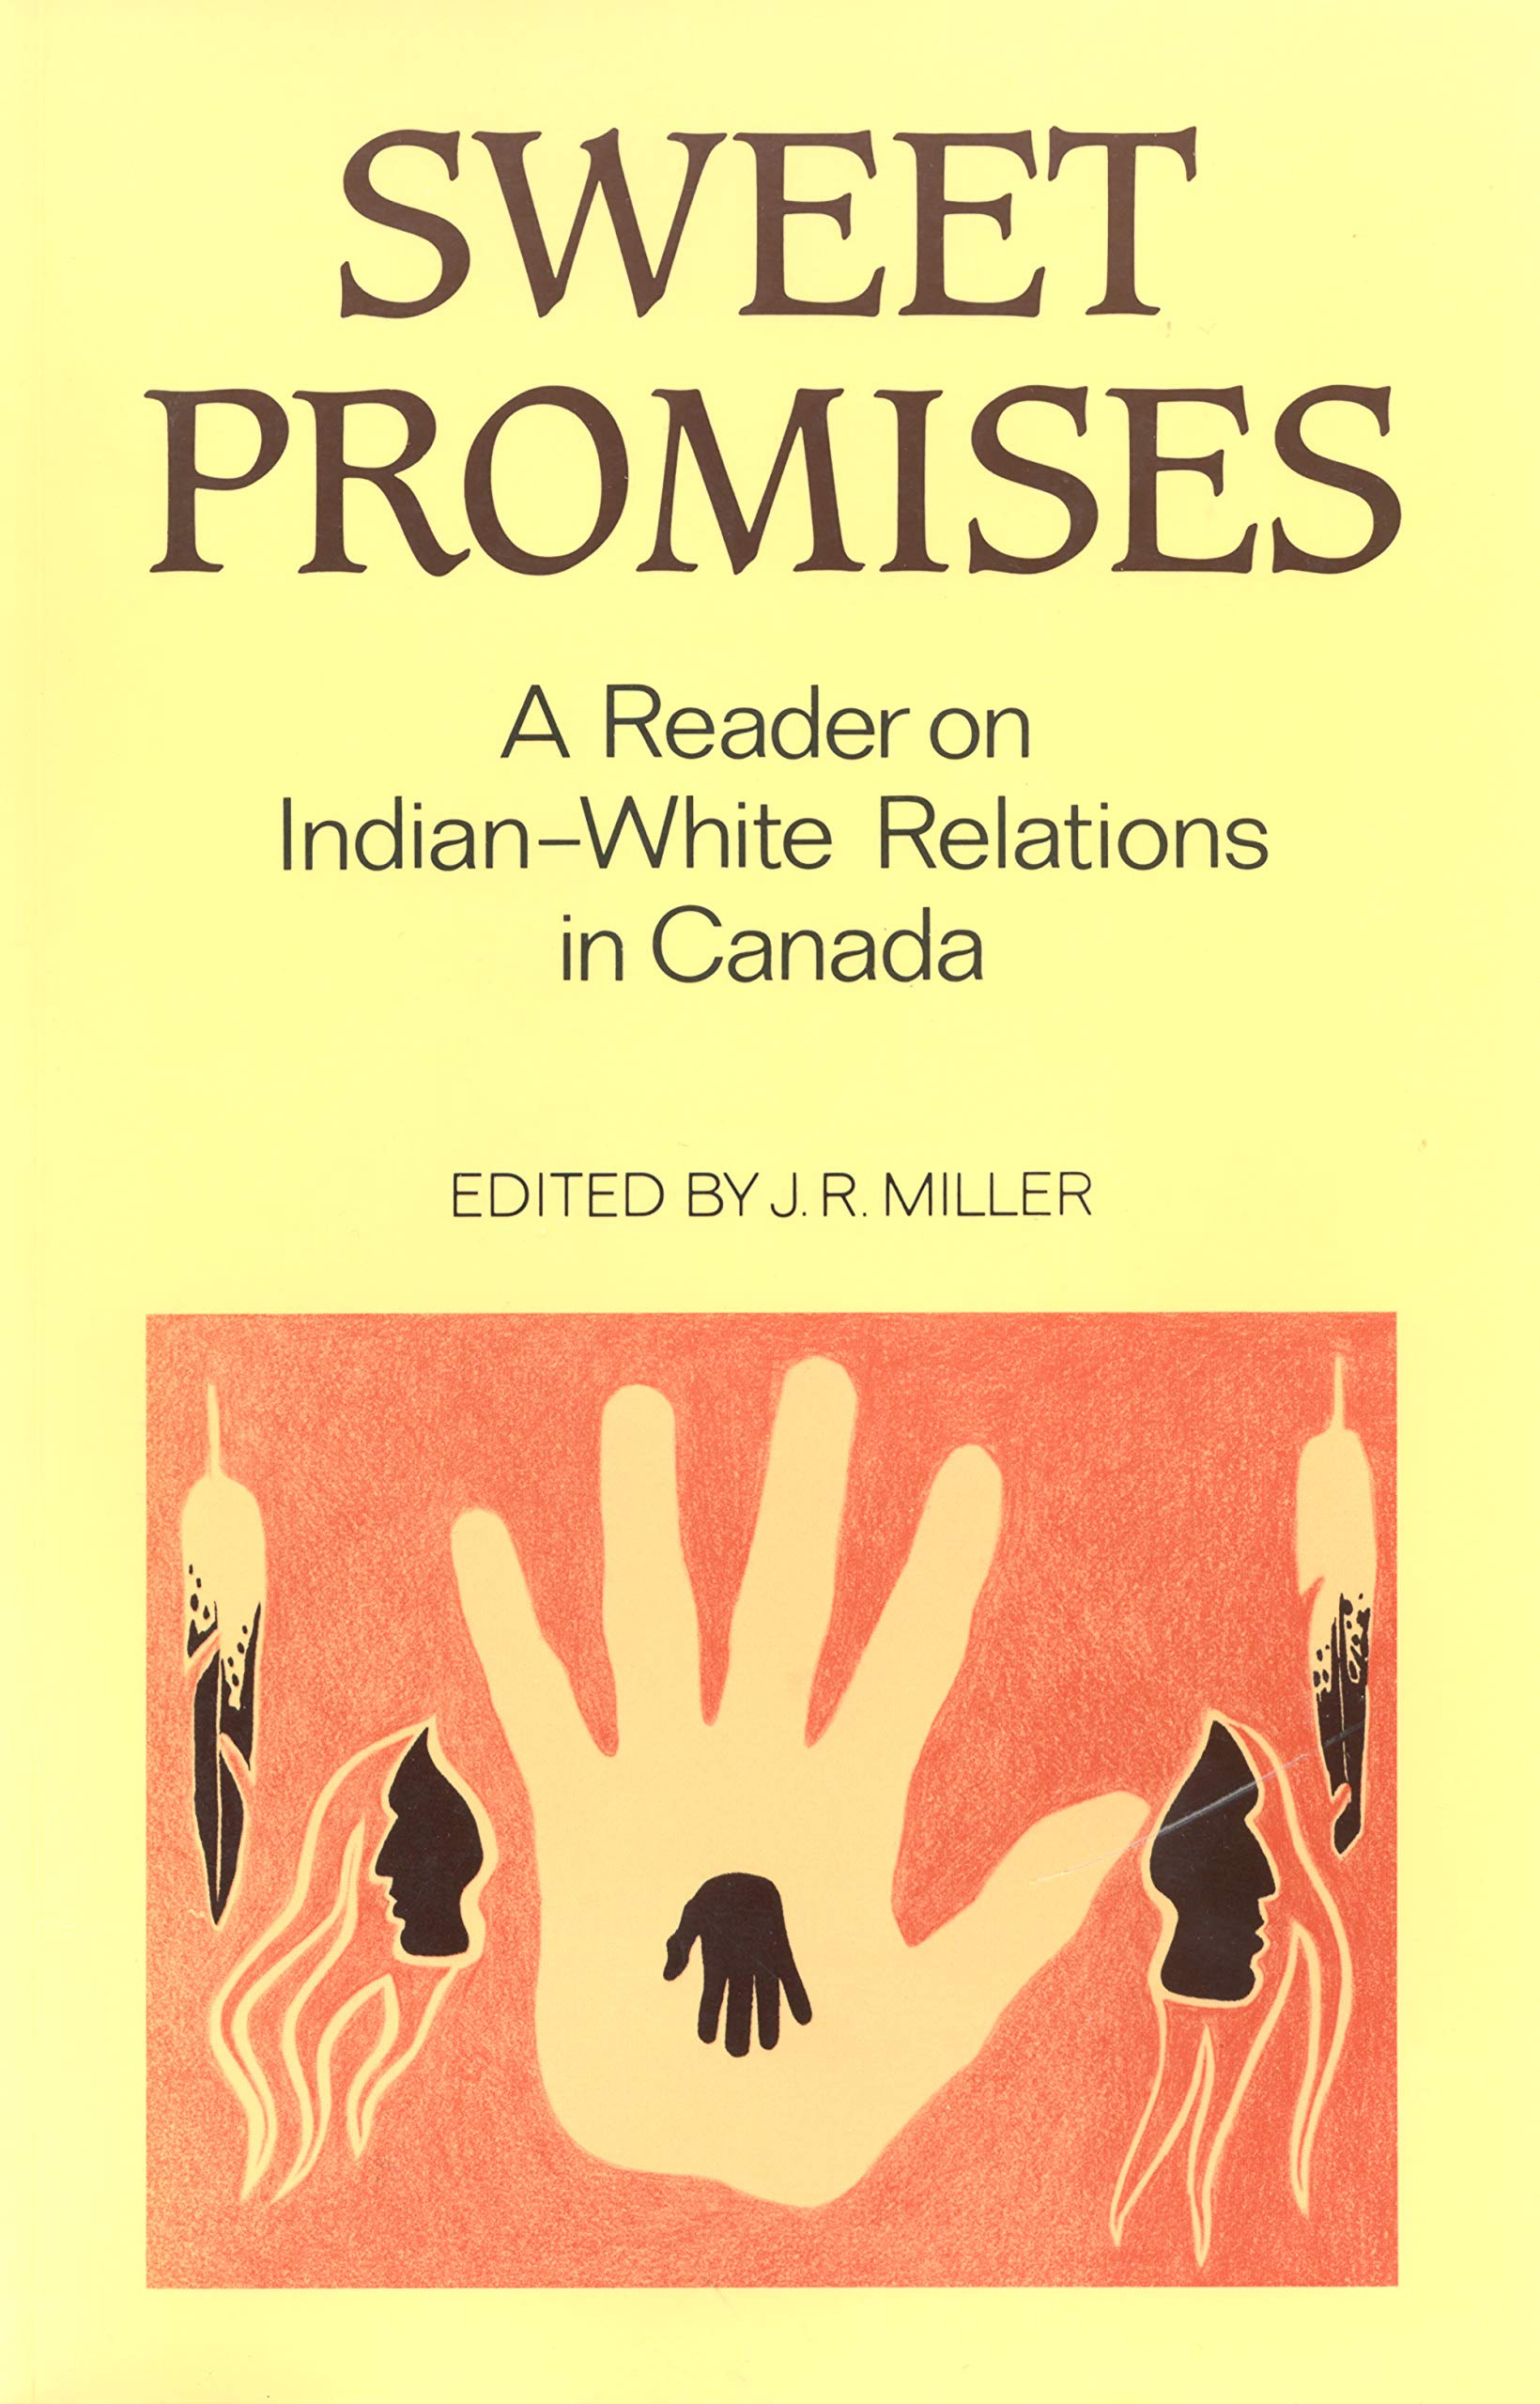 Sweet Promises: A Reader on Indian-White Relations in Canada